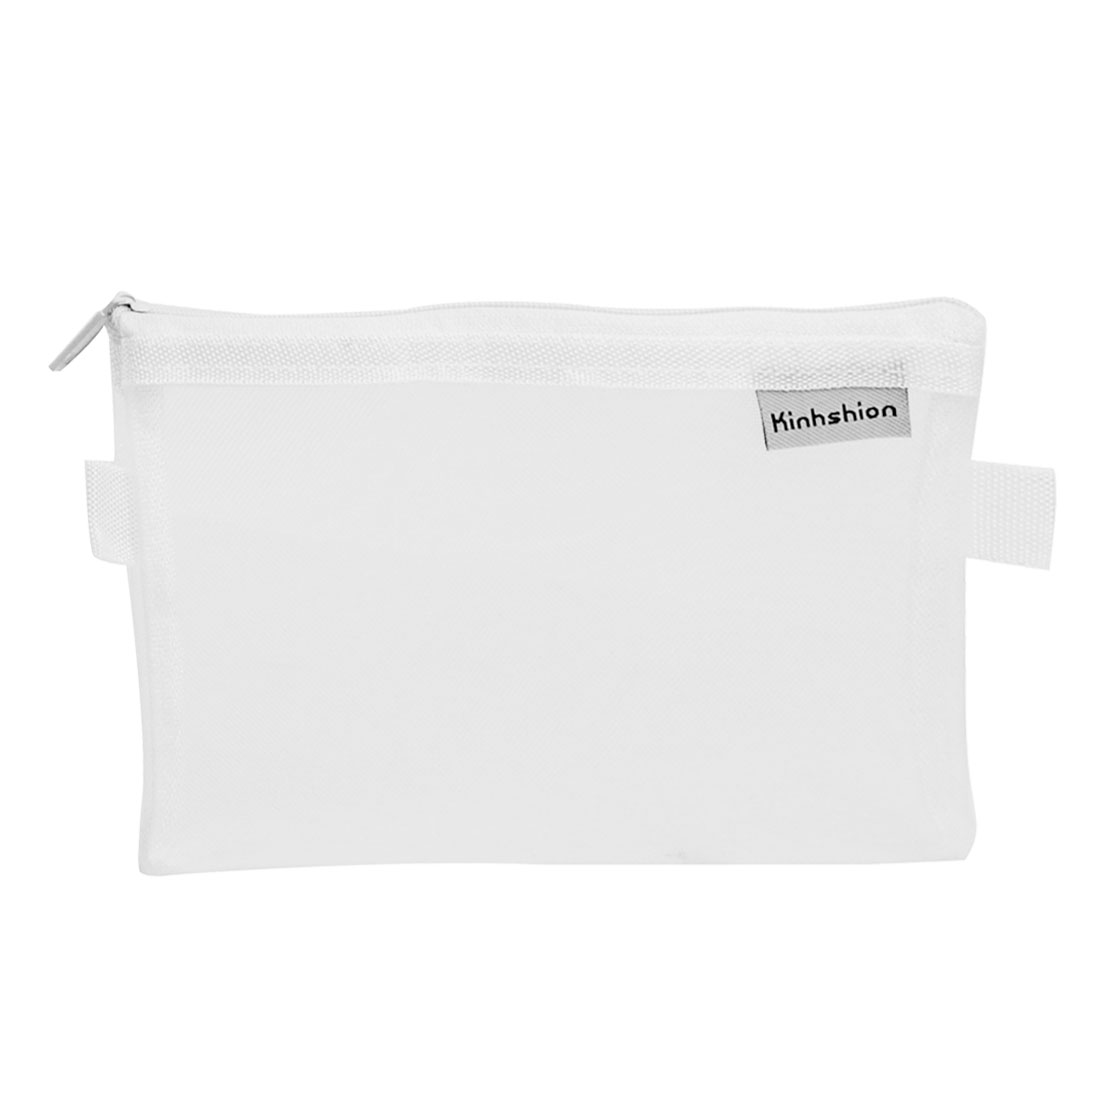 Zip up Nylon Mesh Pencil Pen Stationary Holder Case Bag White for Students